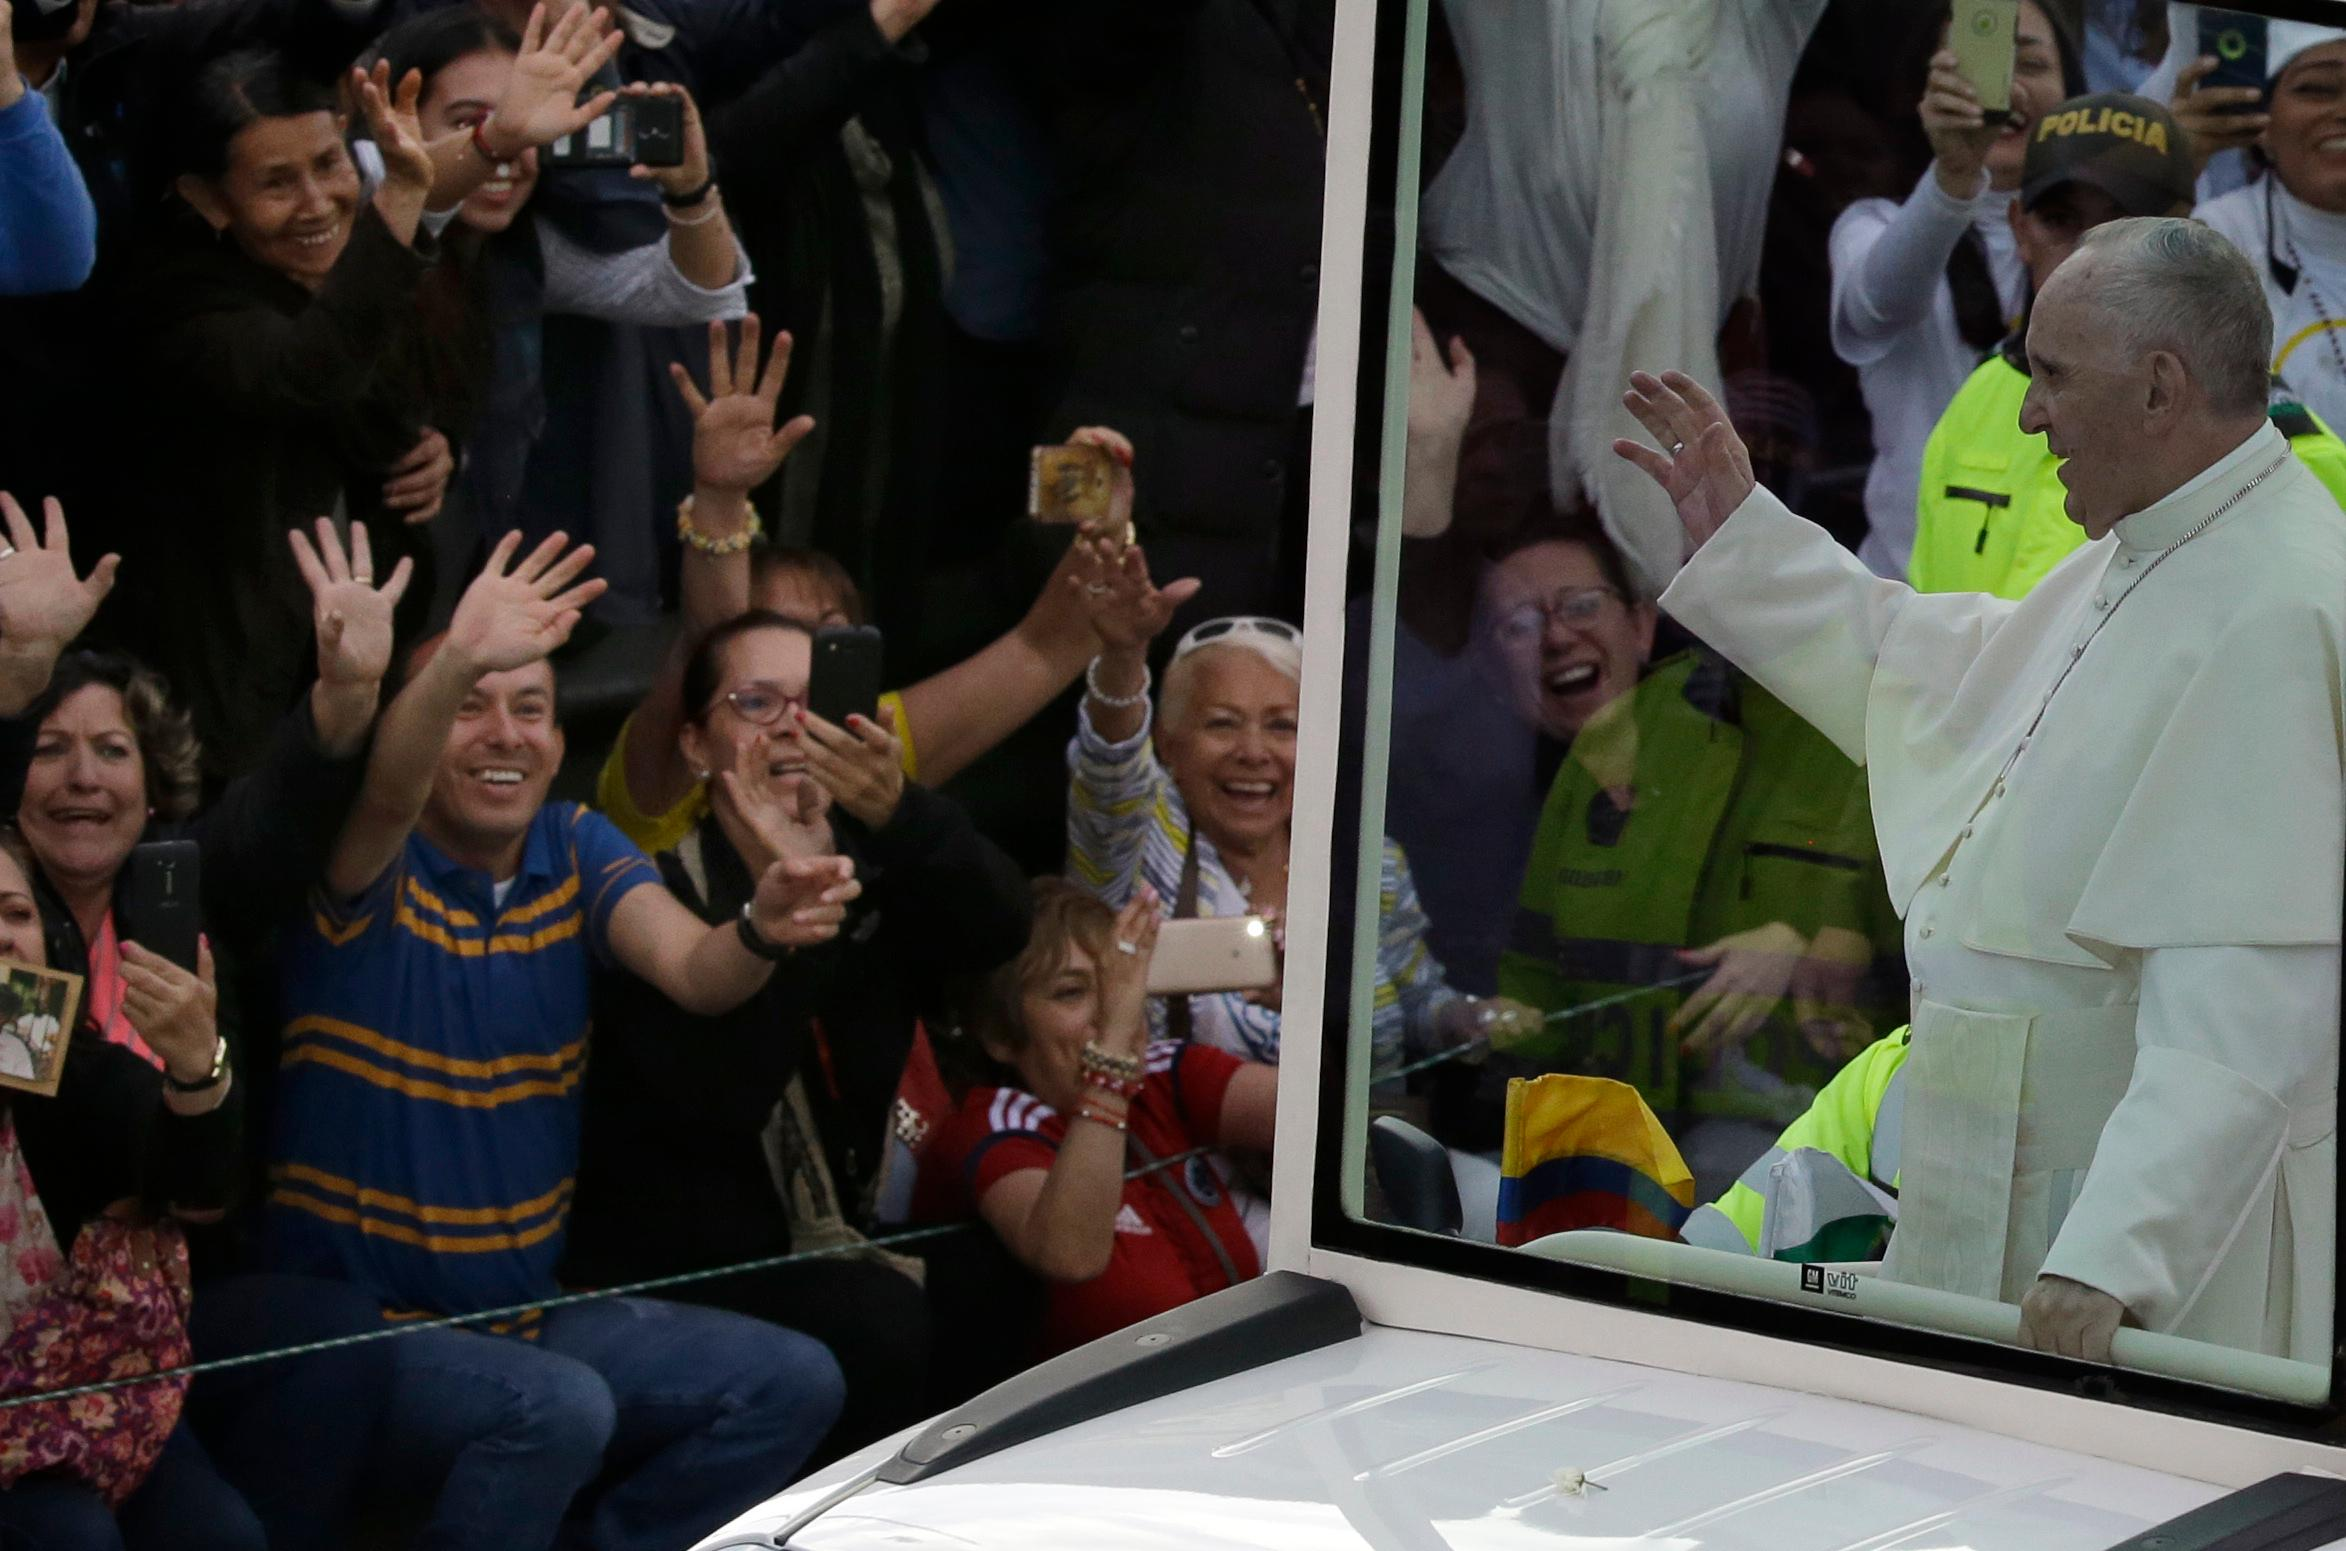 People greet Pope Francis passing by in his popemobile as he makes his way from the airport to the Nunciatura, after arriving to Bogota, Colombia, Wednesday, Sept. 6, 2017. Pope Francis has arrived in Colombia for a five-day visit. (AP Photo/Fernando Vergara)